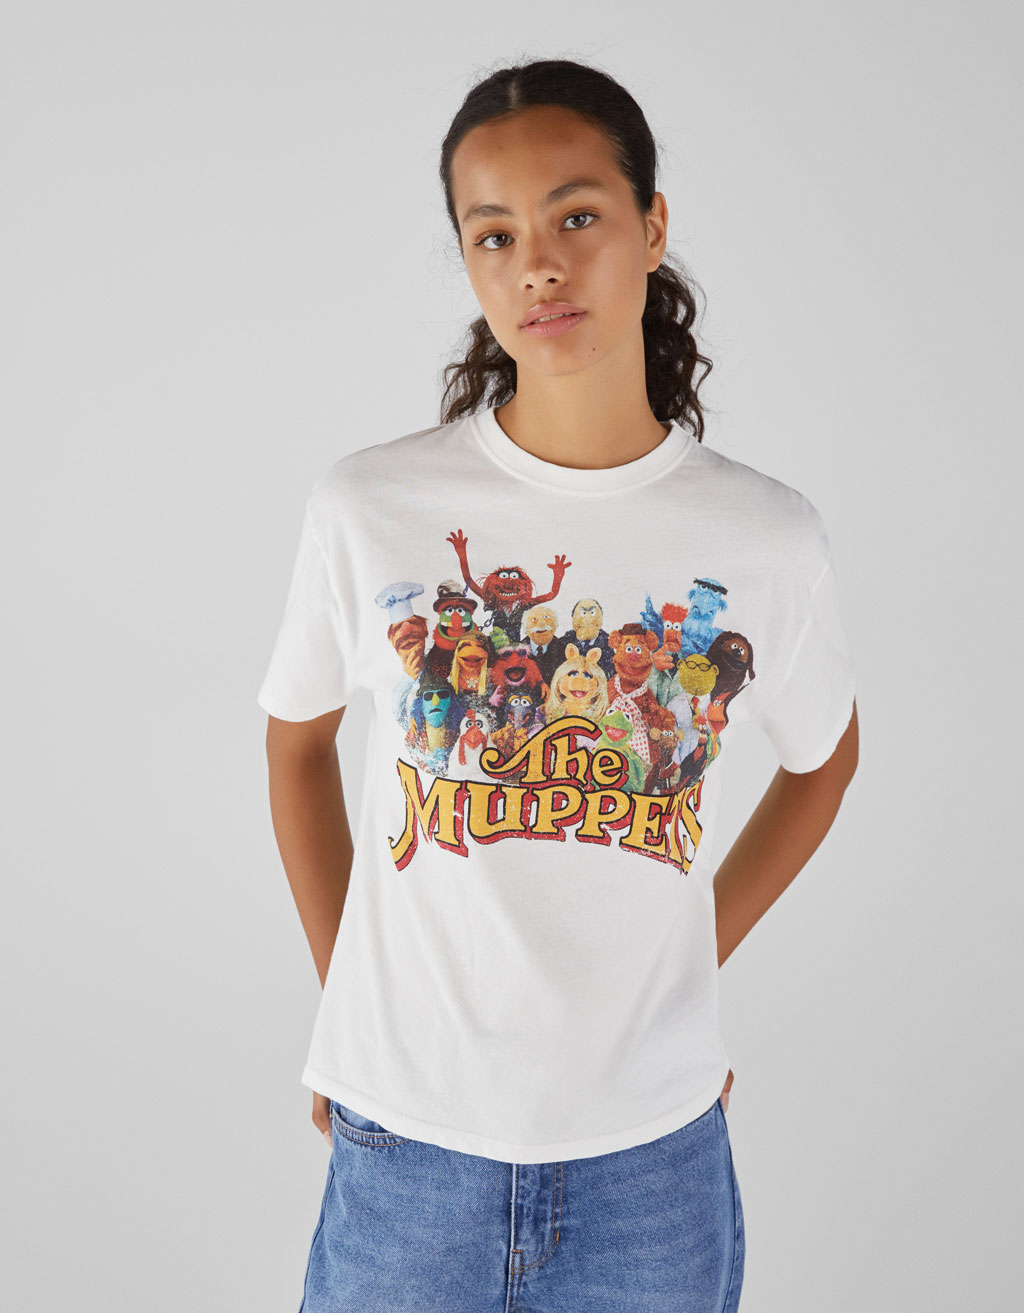 Camiseta The Muppets